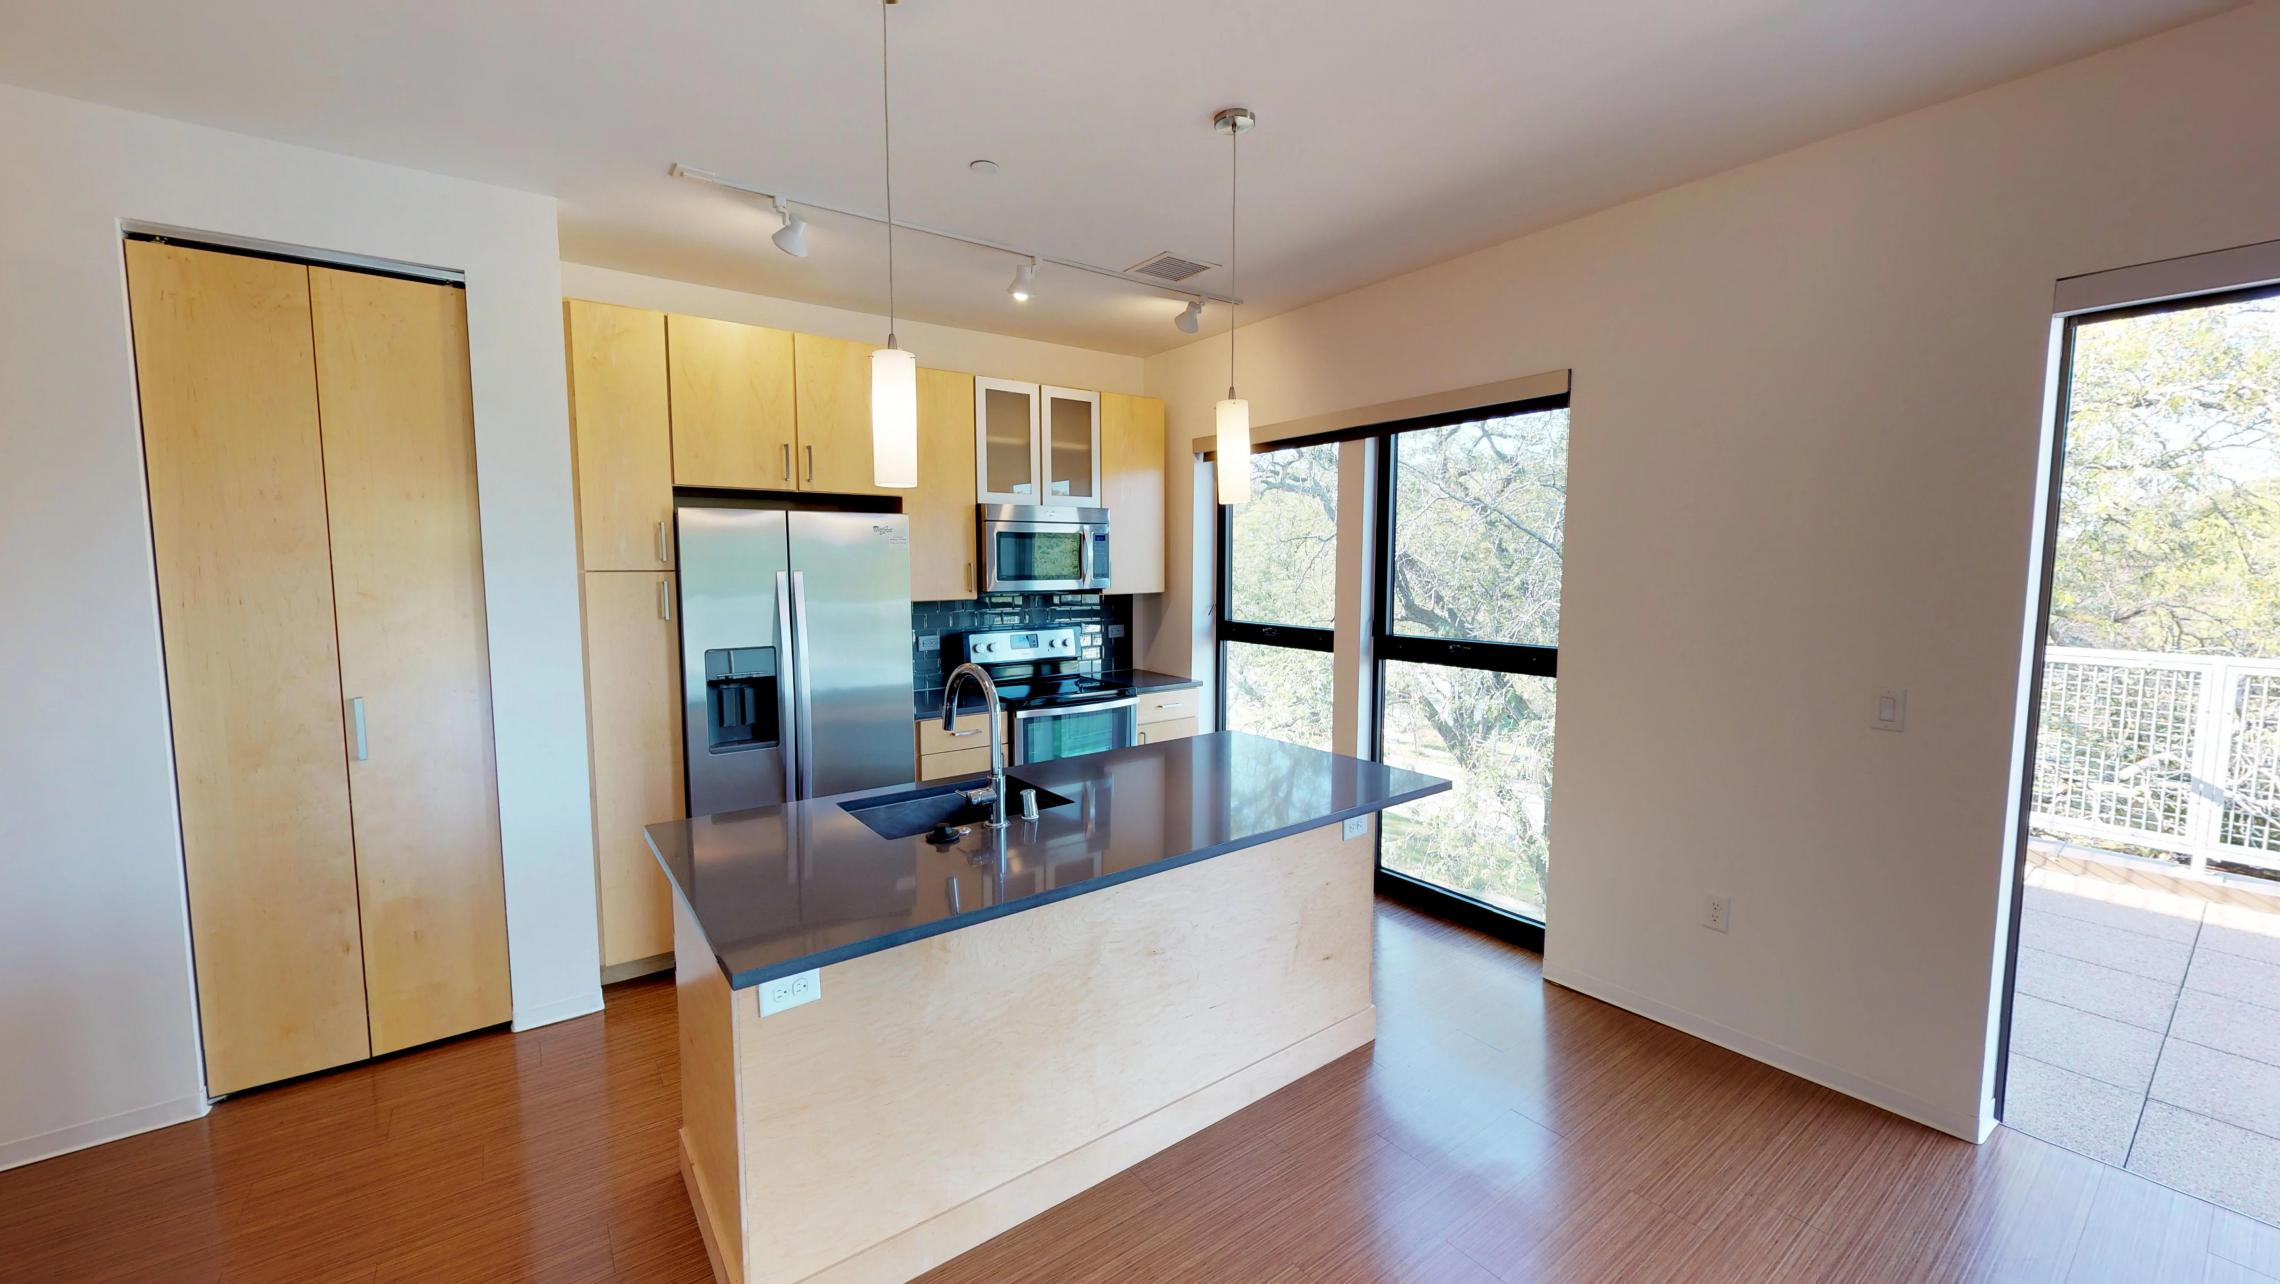 SEVEN27-Apartment 310 - Kitchen - One bedroom - floor to ceiling windows - modern